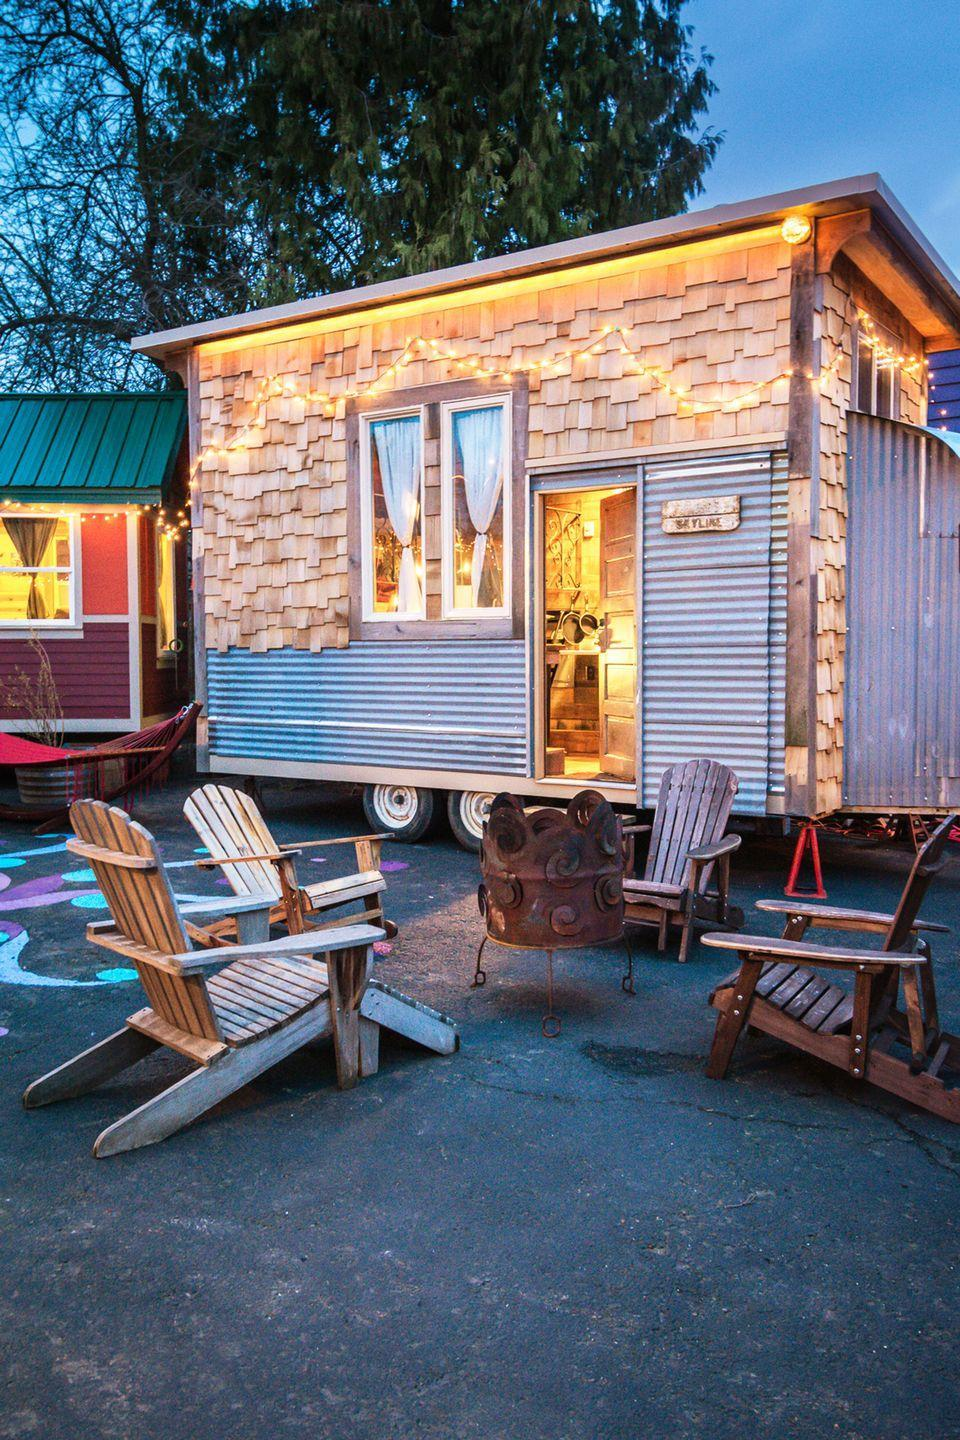 """<p>One of six tiny houses—each built on wheels and outfitted with a bathroom, kitchen, and sleeping loft—at <a href=""""https://tinyhousehotel.com/"""" rel=""""nofollow noopener"""" target=""""_blank"""" data-ylk=""""slk:Caravan Tiny House Hotel"""" class=""""link rapid-noclick-resp"""">Caravan Tiny House Hotel</a> in Portland, Oregon, the <a href=""""https://tinyhousehotel.com/the-tiny-houses/skyline/"""" rel=""""nofollow noopener"""" target=""""_blank"""" data-ylk=""""slk:Skyline"""" class=""""link rapid-noclick-resp"""">Skyline</a> cabin is one of the newest additions to the hotel. The 160-square-foot structure is constructed of mostly salvaged materials and houses two queen beds. Rental rates are $125 per night.</p><p><a class=""""link rapid-noclick-resp"""" href=""""https://go.redirectingat.com?id=74968X1596630&url=https%3A%2F%2Fwww.tripadvisor.com%2FHotel_Review-g52024-d4582522-Reviews-Caravan_The_Tiny_House_Hotel-Portland_Oregon.html&sref=https%3A%2F%2Fwww.countryliving.com%2Fhome-design%2Fg1887%2Ftiny-house%2F"""" rel=""""nofollow noopener"""" target=""""_blank"""" data-ylk=""""slk:PLAN YOUR TRIP"""">PLAN YOUR TRIP</a><br></p>"""